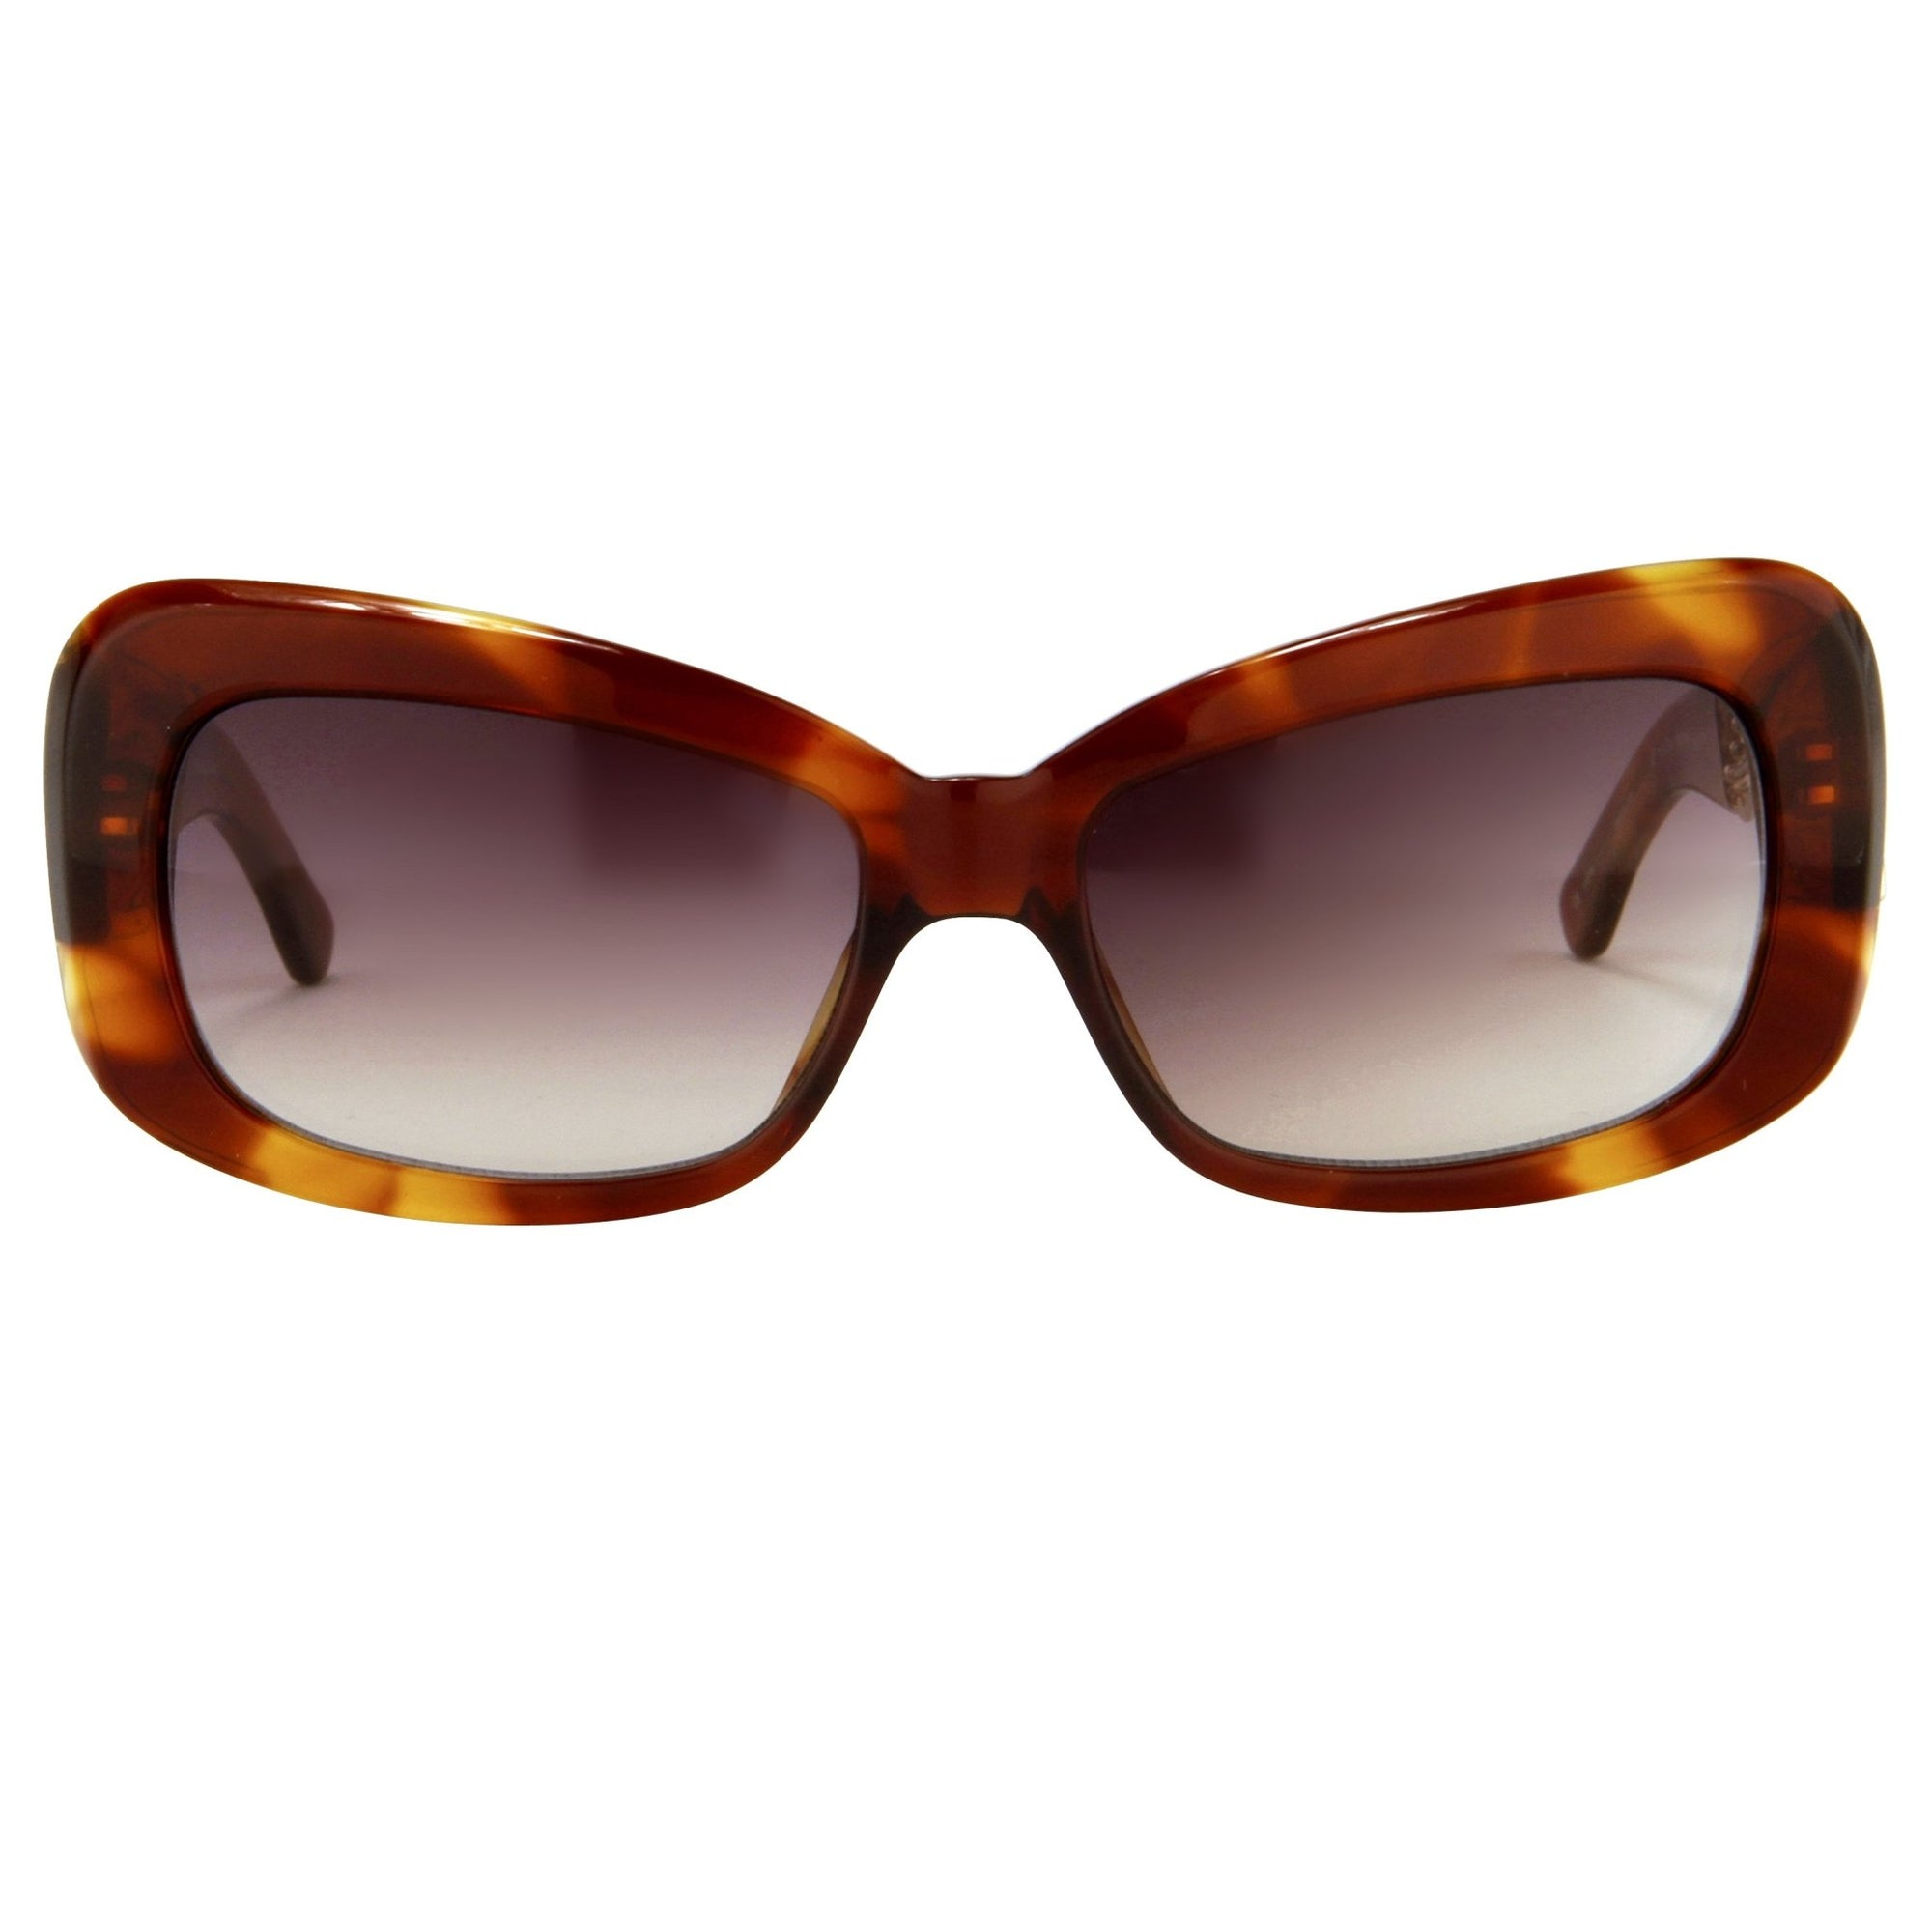 Prabal Gurung Sunglasses Women's Rectangle Tortoise Shell Acetate and Light Gold with CAT2 Grey Lenses PG14C2SUN - Watches & Crystals